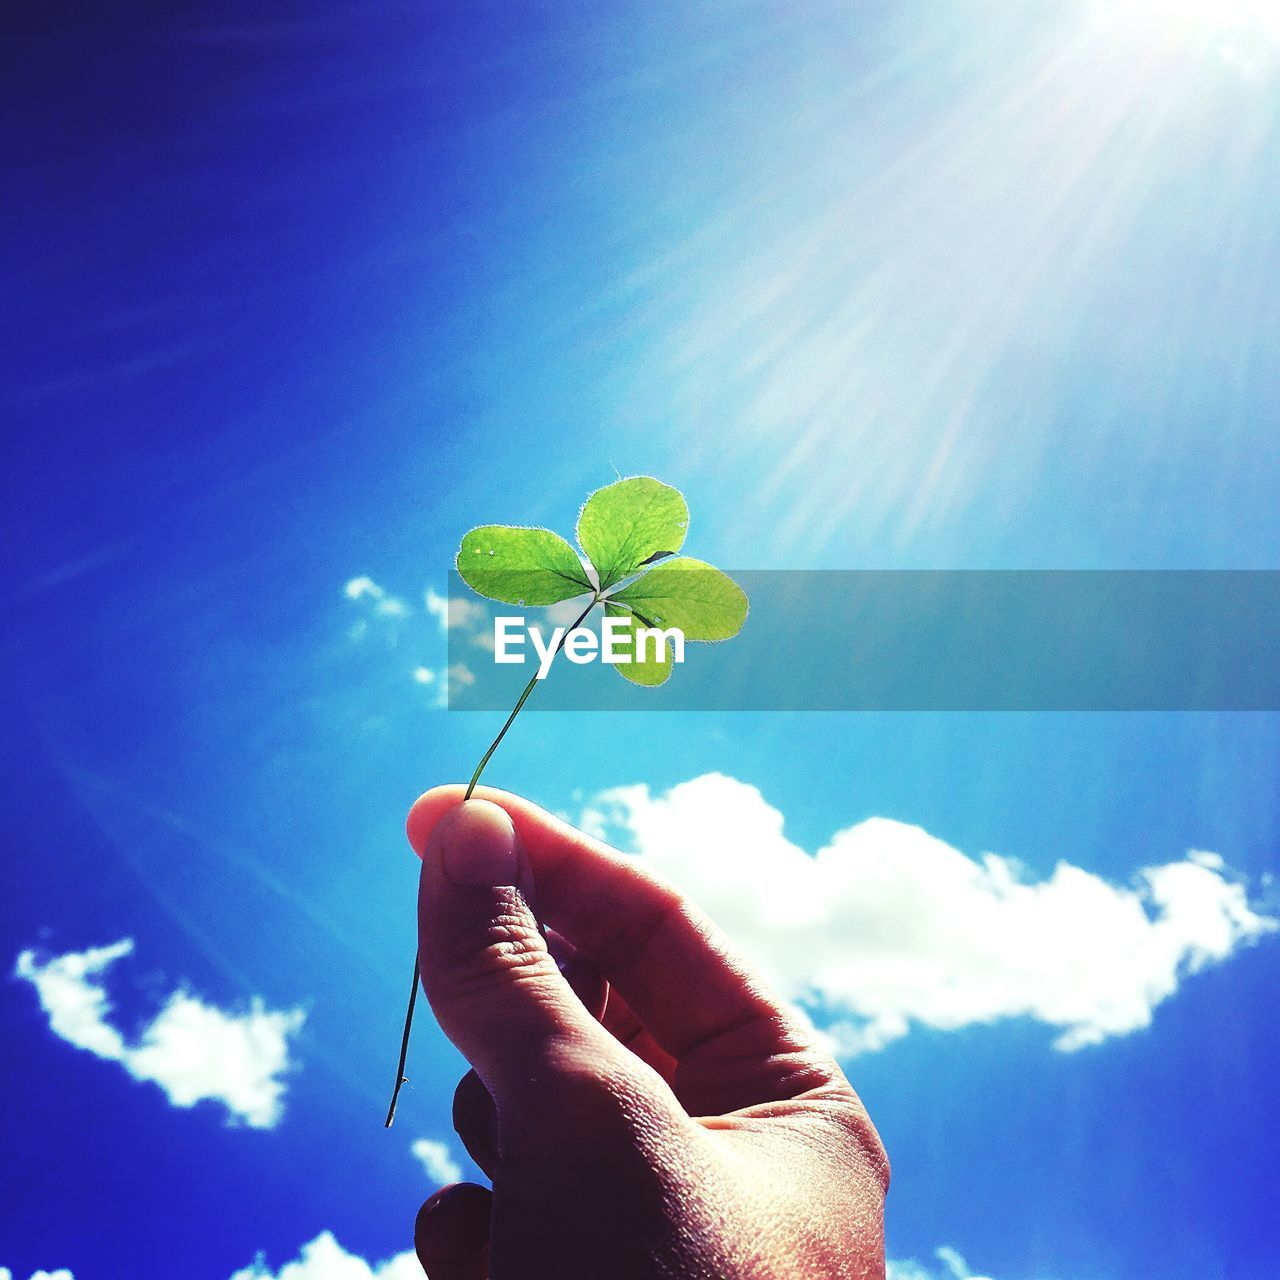 human hand, sky, hand, human body part, holding, one person, leaf, body part, unrecognizable person, real people, finger, nature, plant part, low angle view, sunlight, blue, human finger, day, cloud - sky, personal perspective, outdoors, lens flare, human limb, small, care